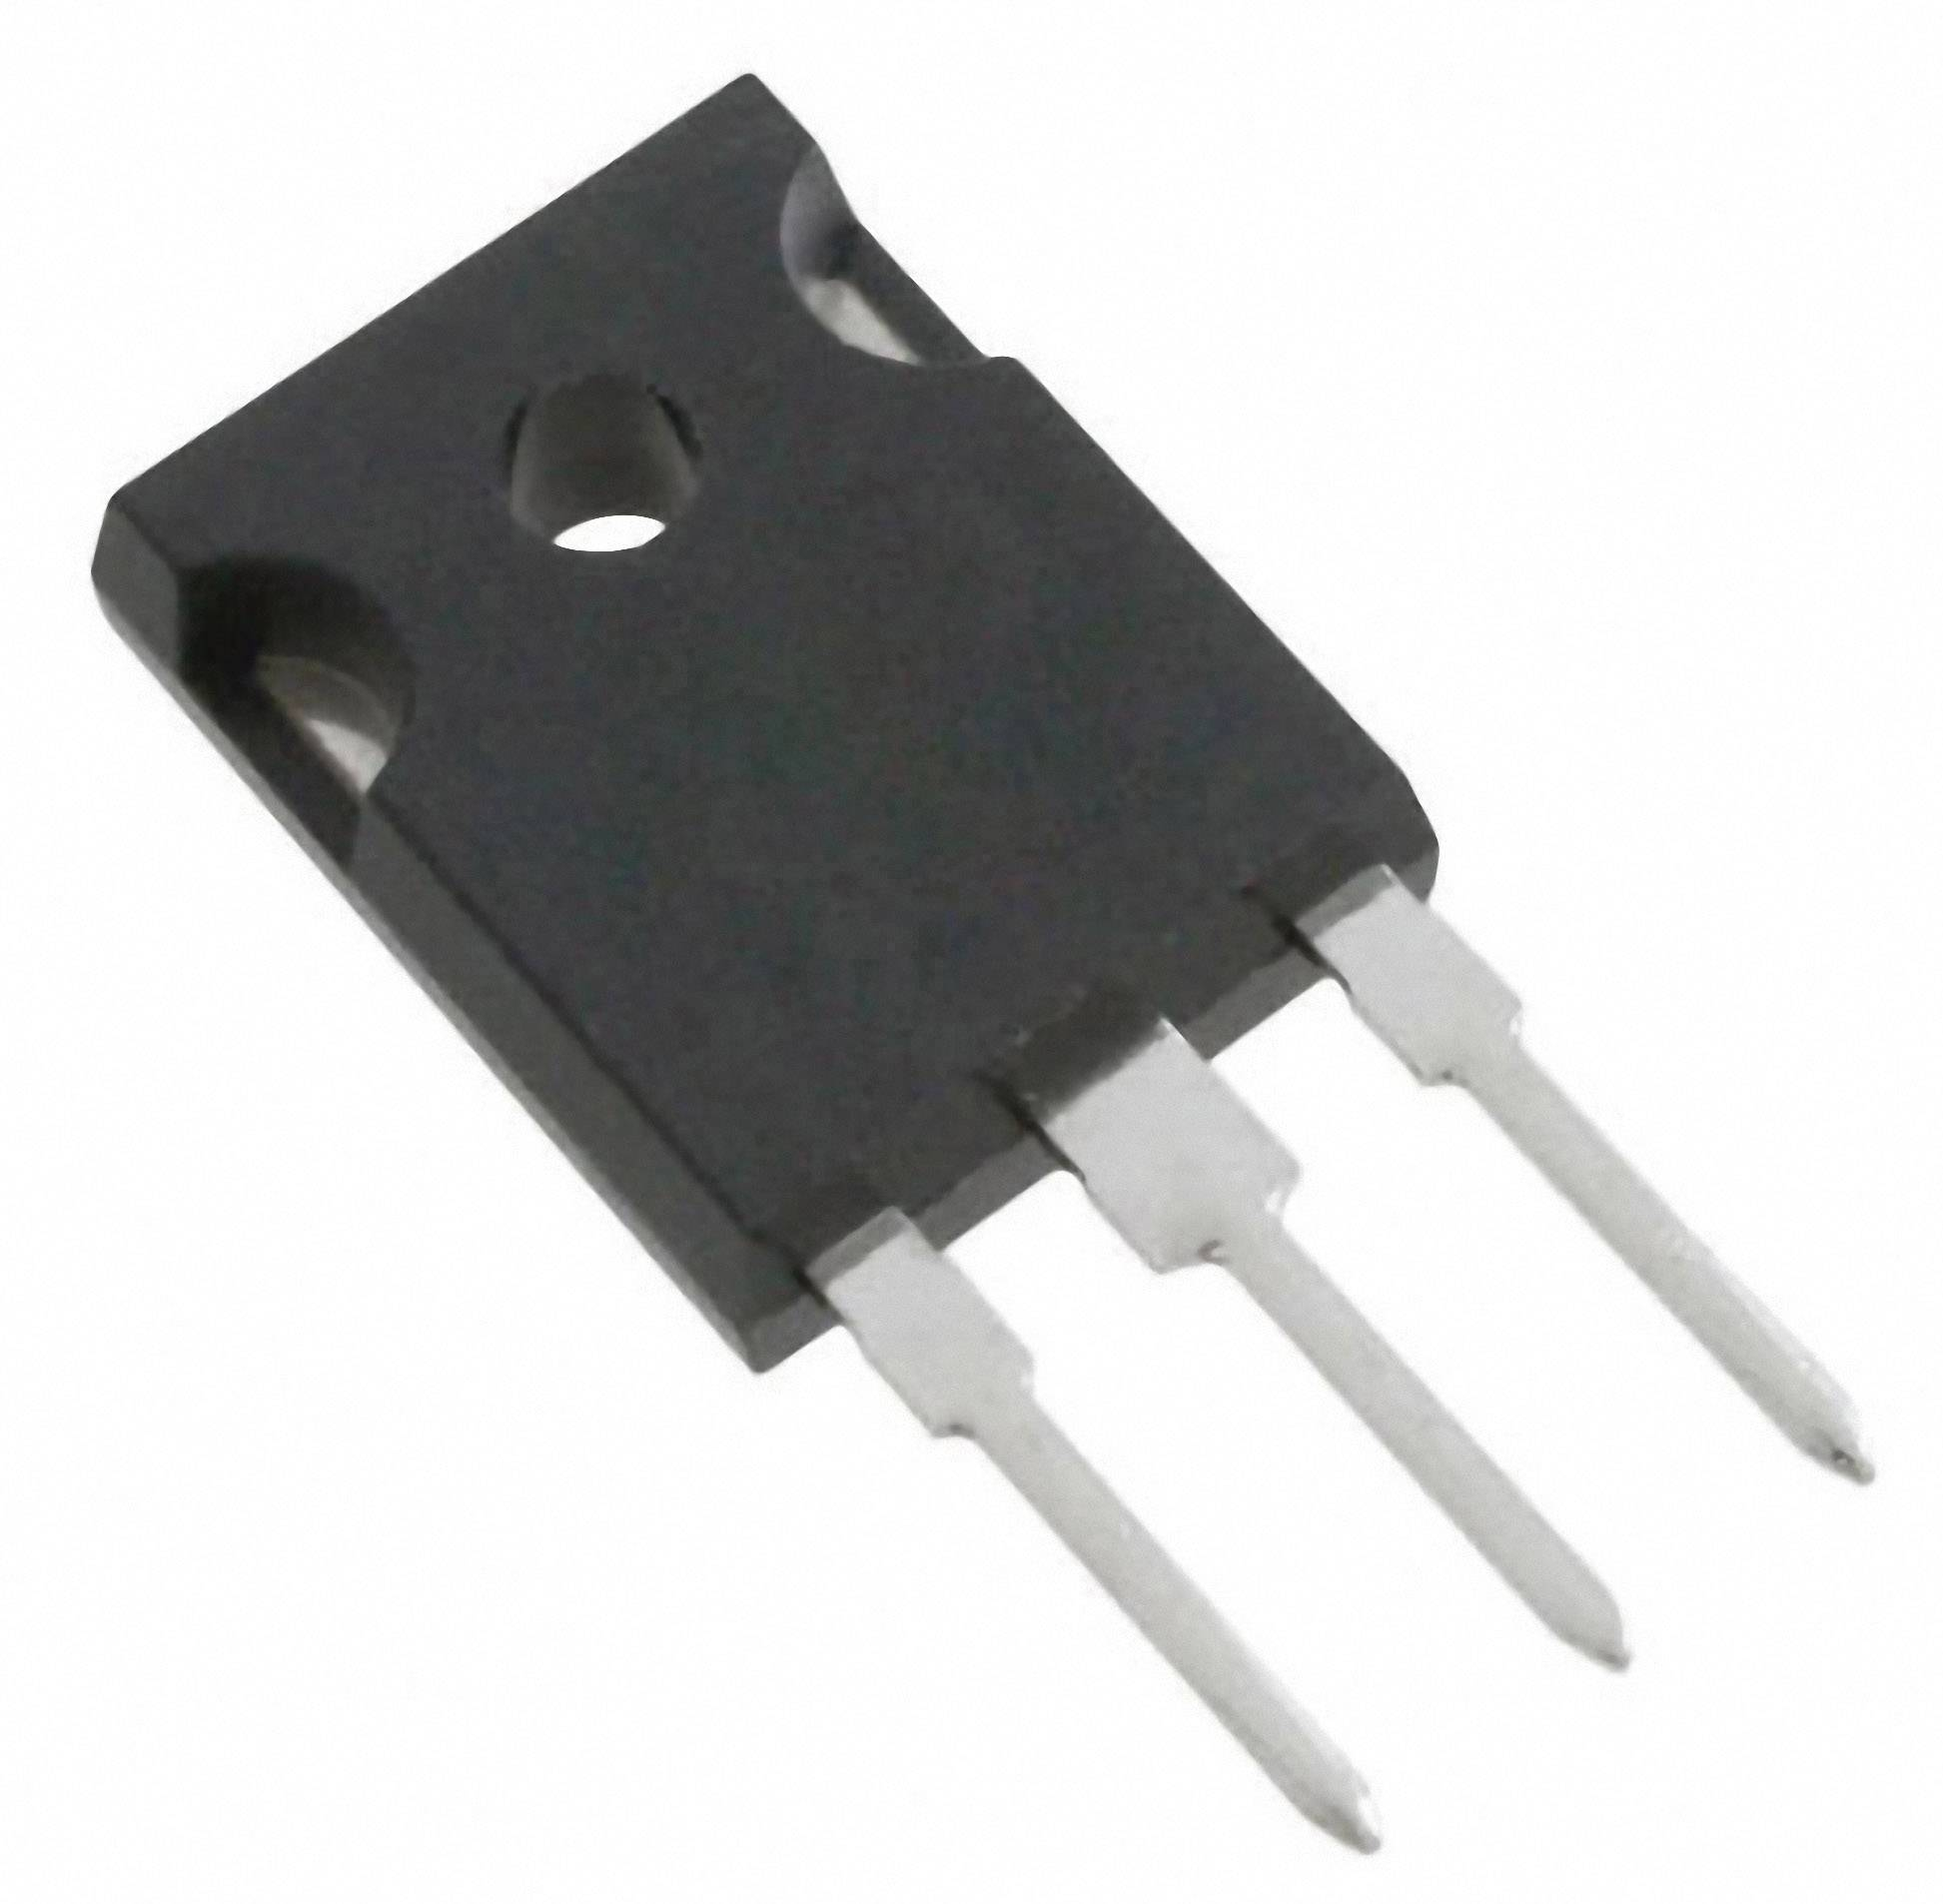 MOSFET Fairchild Semiconductor N kanál N-CH 75 FDH047AN08A0 TO-247-3 FSC